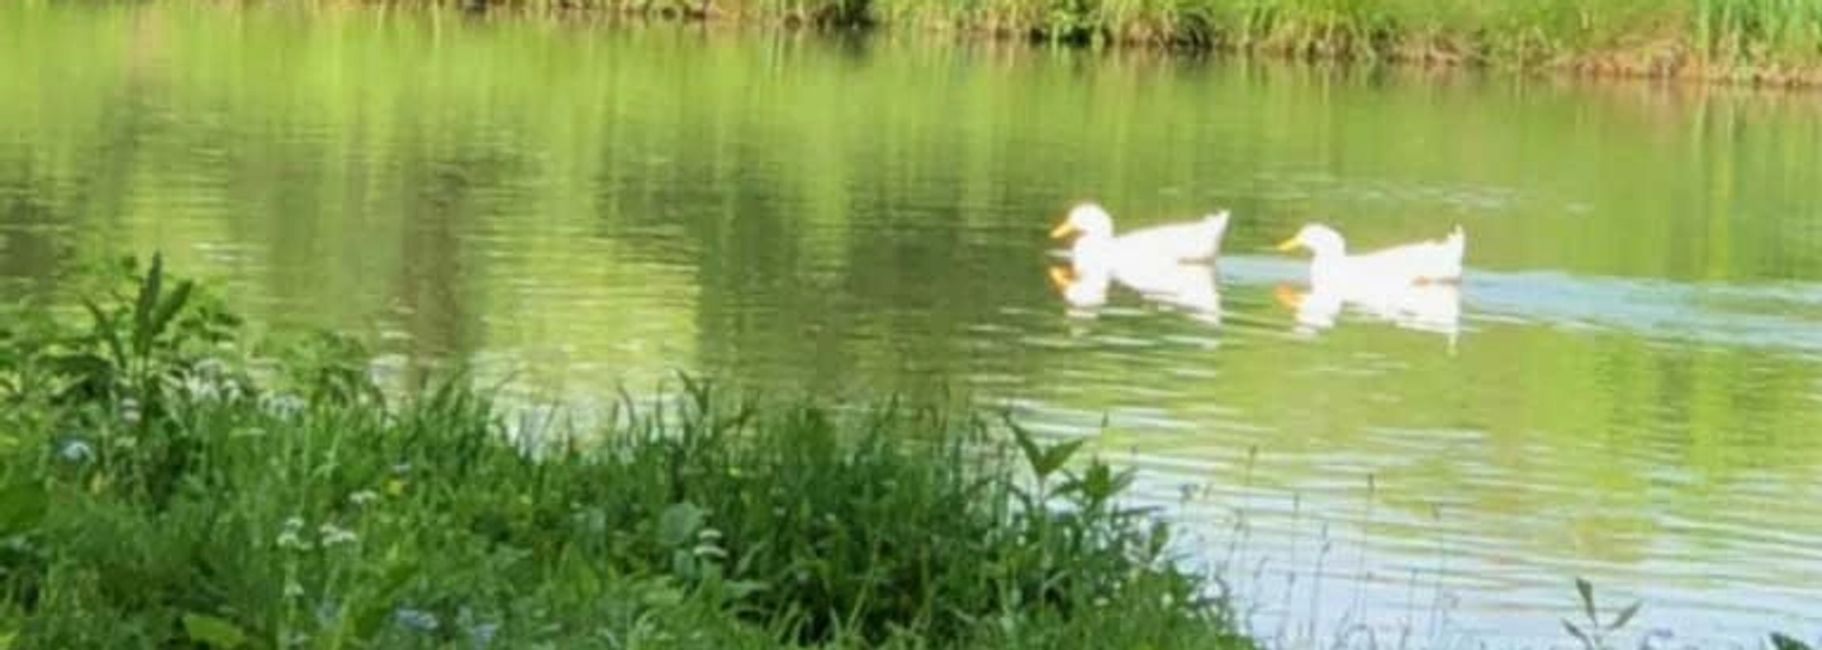 ducks in pond swimming